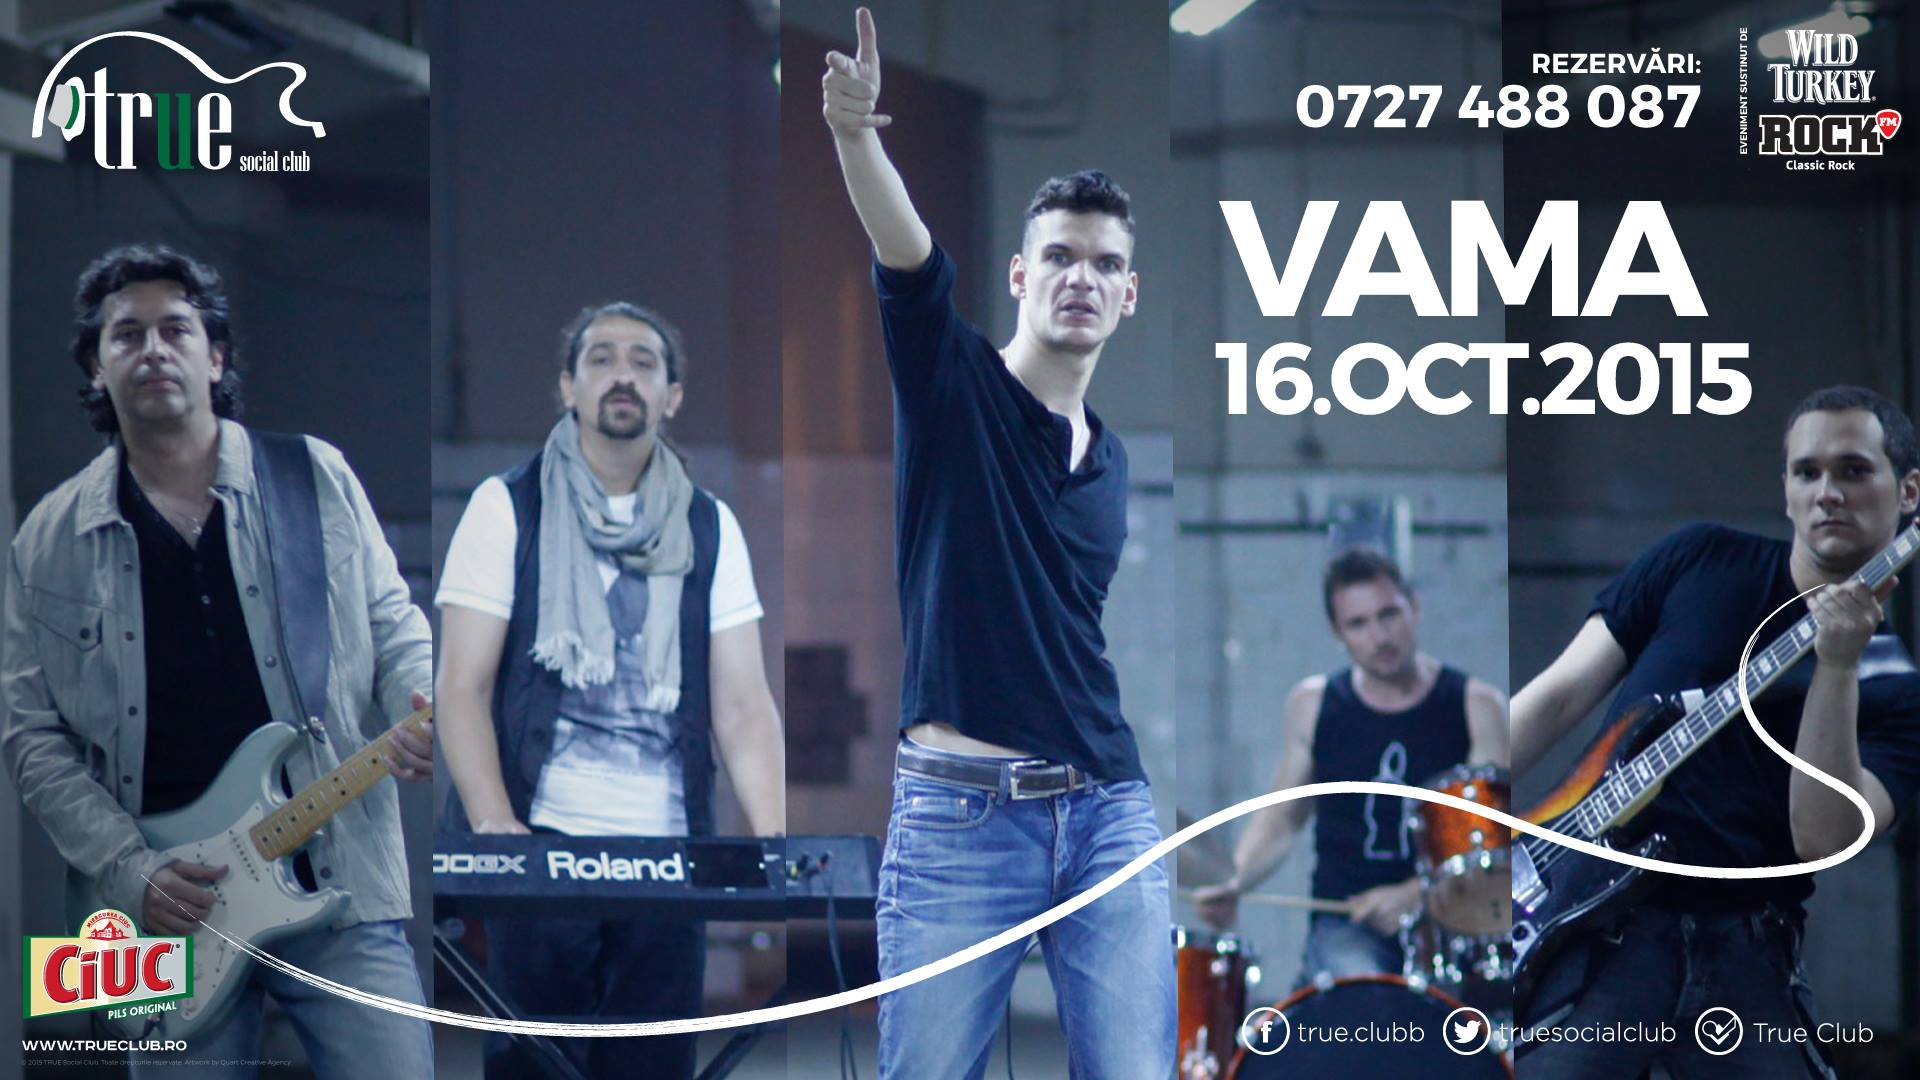 Afiș Vama Concert True Club 2015